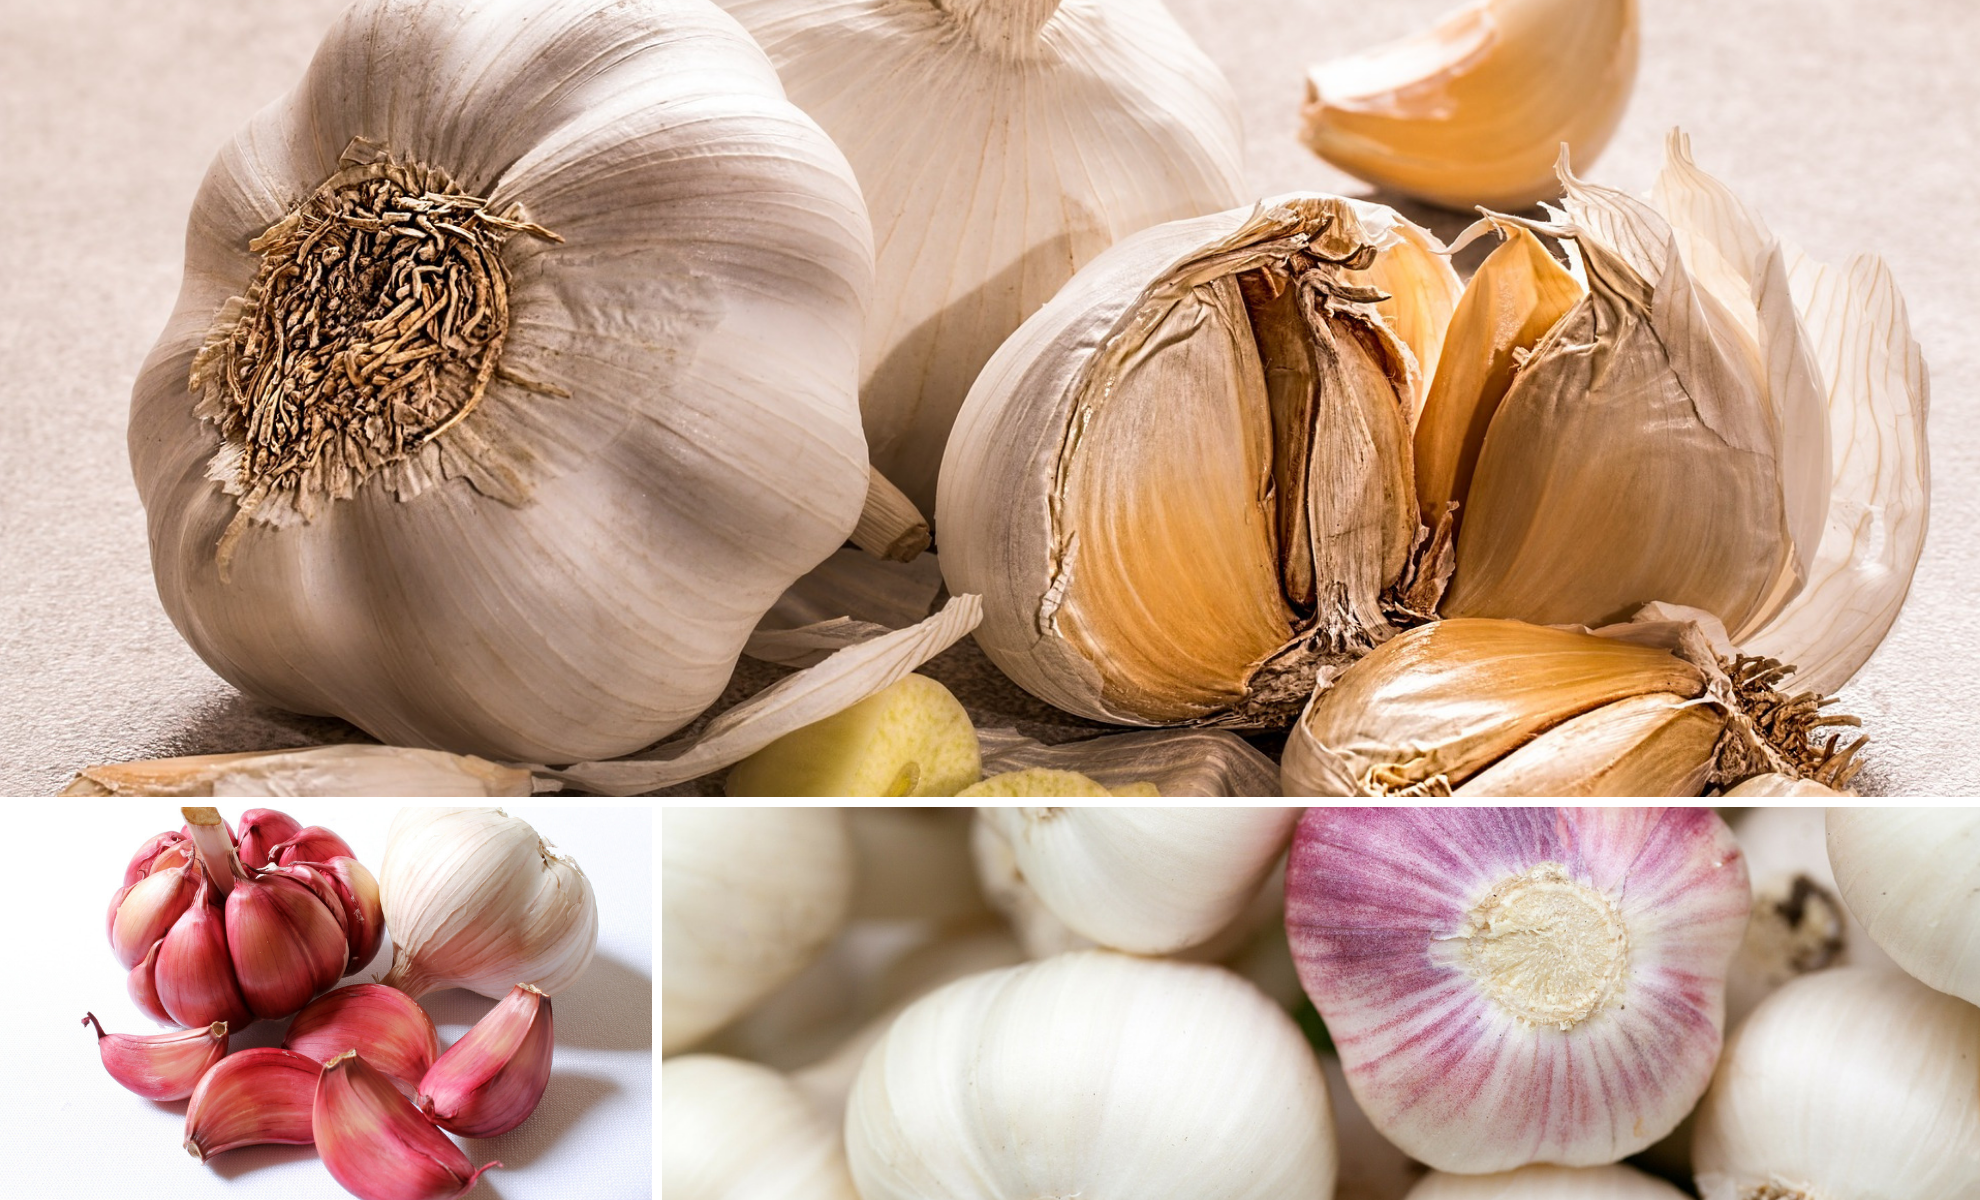 How to Crush, Smash and Chop Garlic